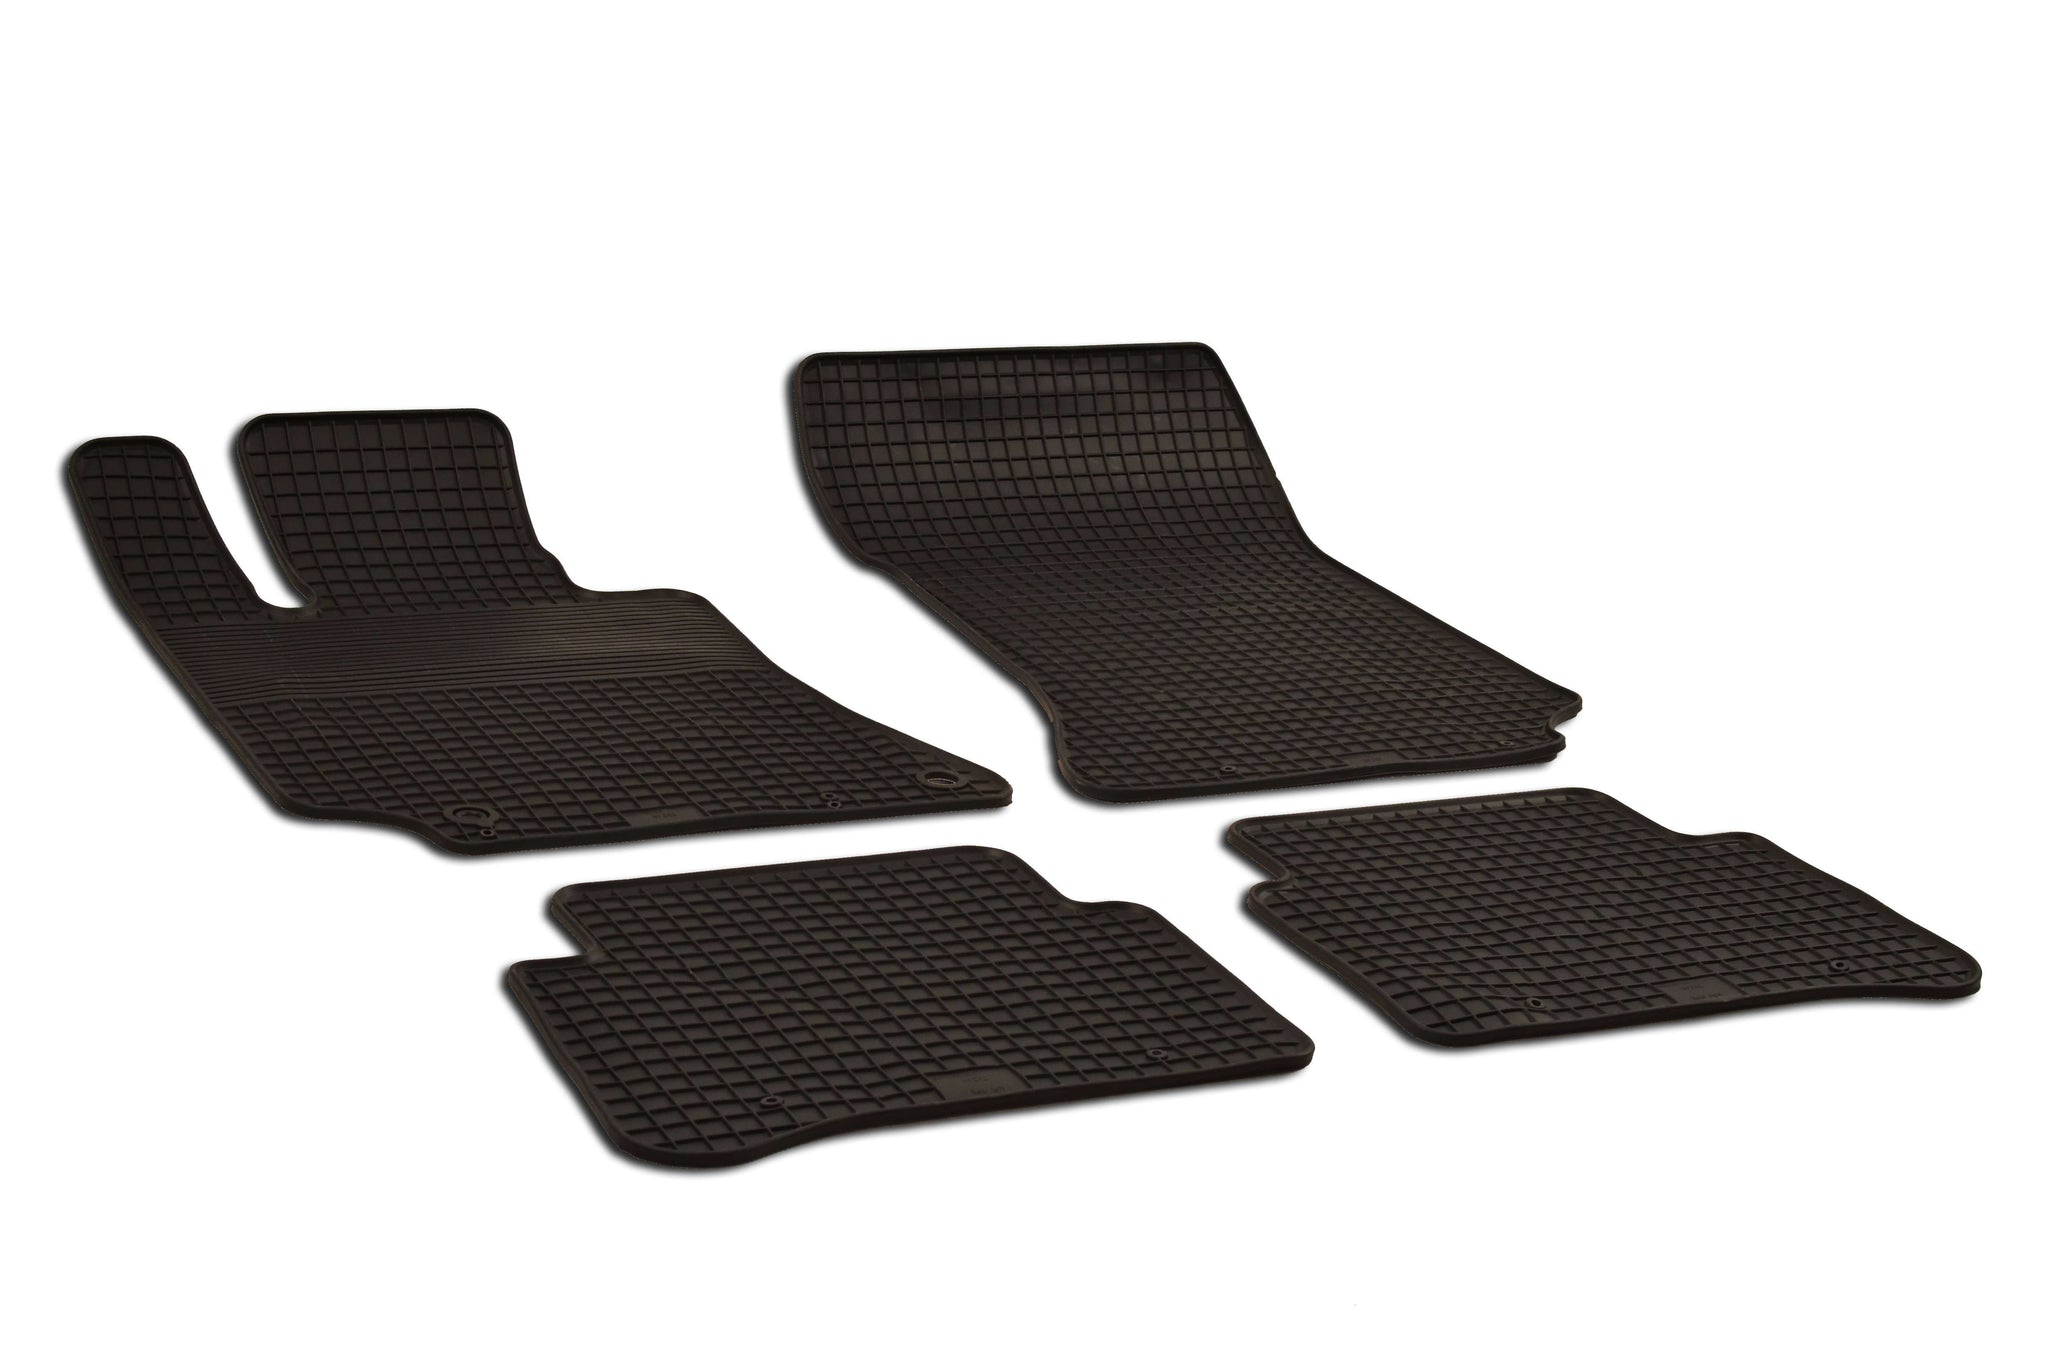 Mercedes E350 2010 Sedan 212.087 Set of 4 Black Rubber OE Fit All Weather Car Floor Mats